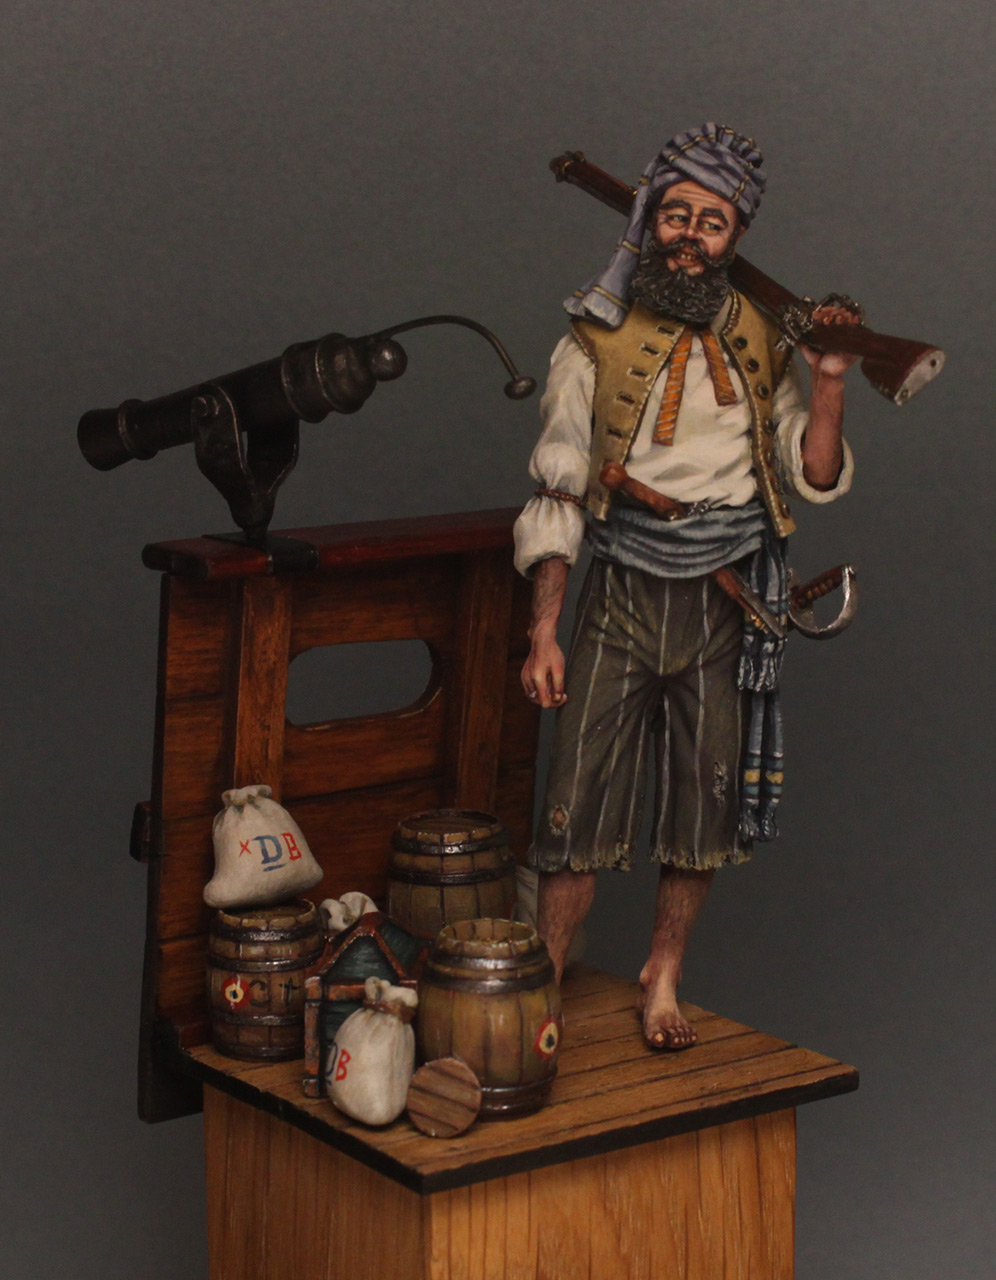 Dioramas and Vignettes: Good catch, photo #1